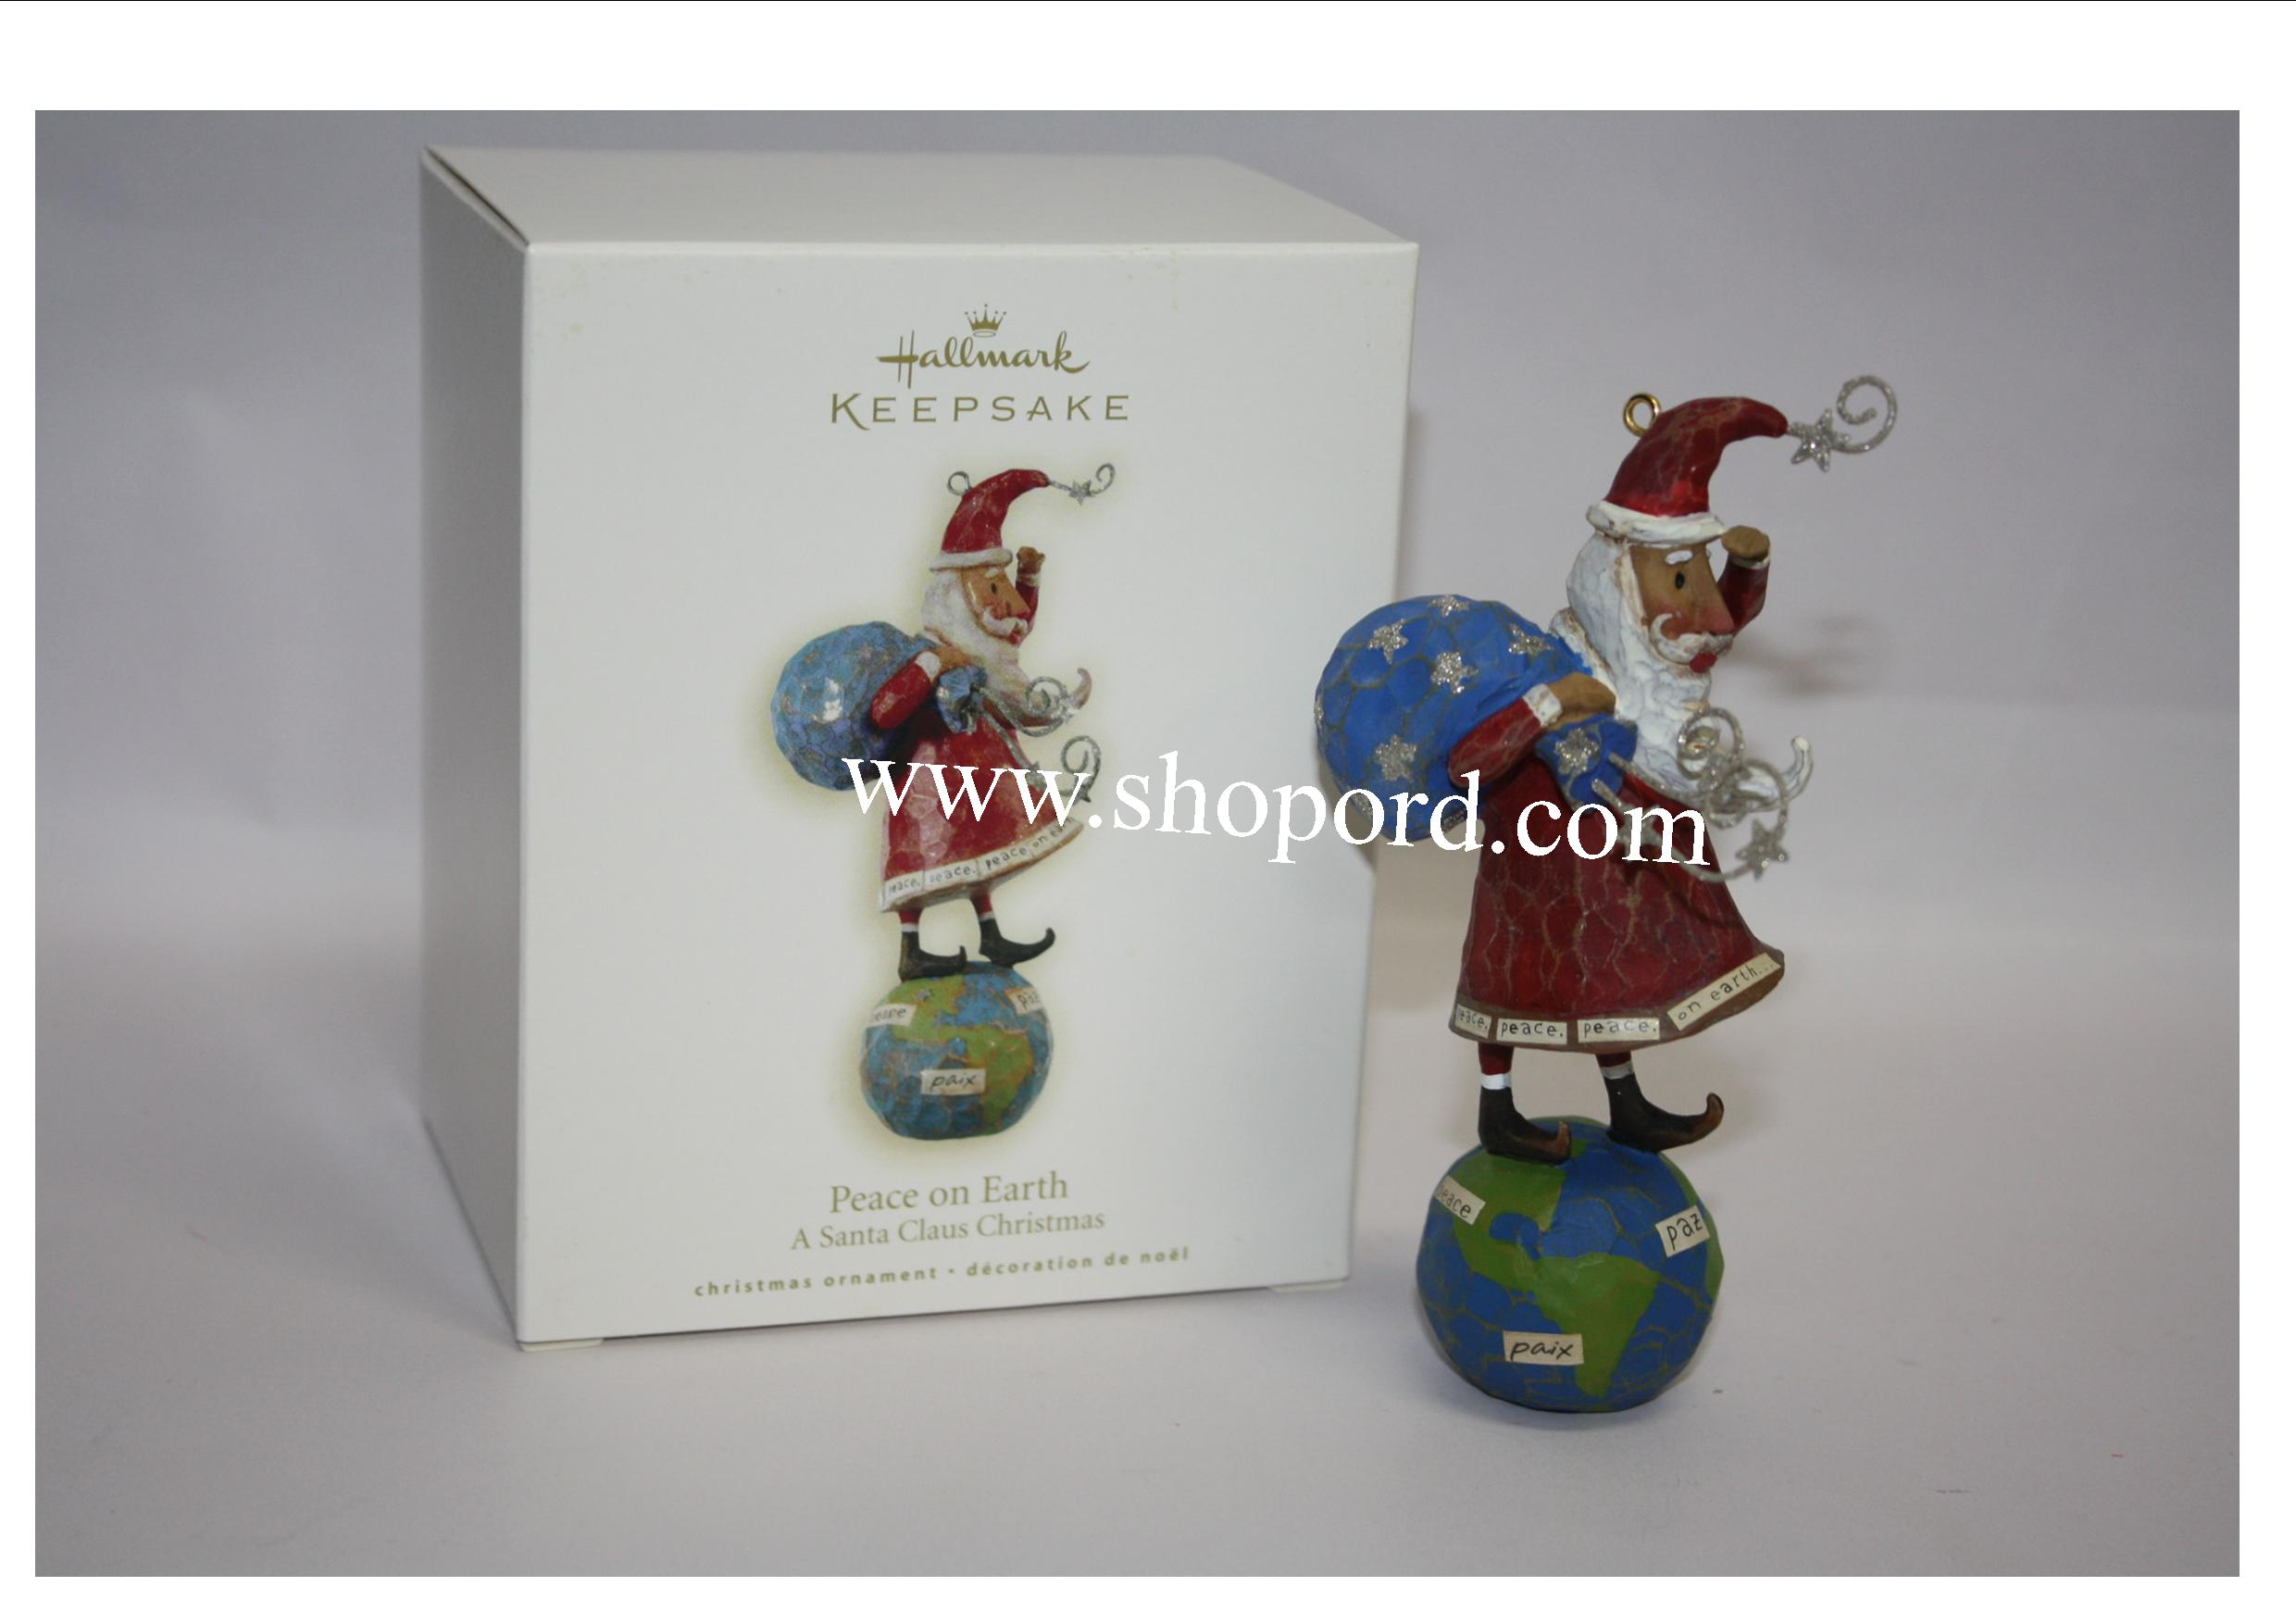 Hallmark 2008 Peace on Earth Ornament A Santa Claus Christmas QP1601